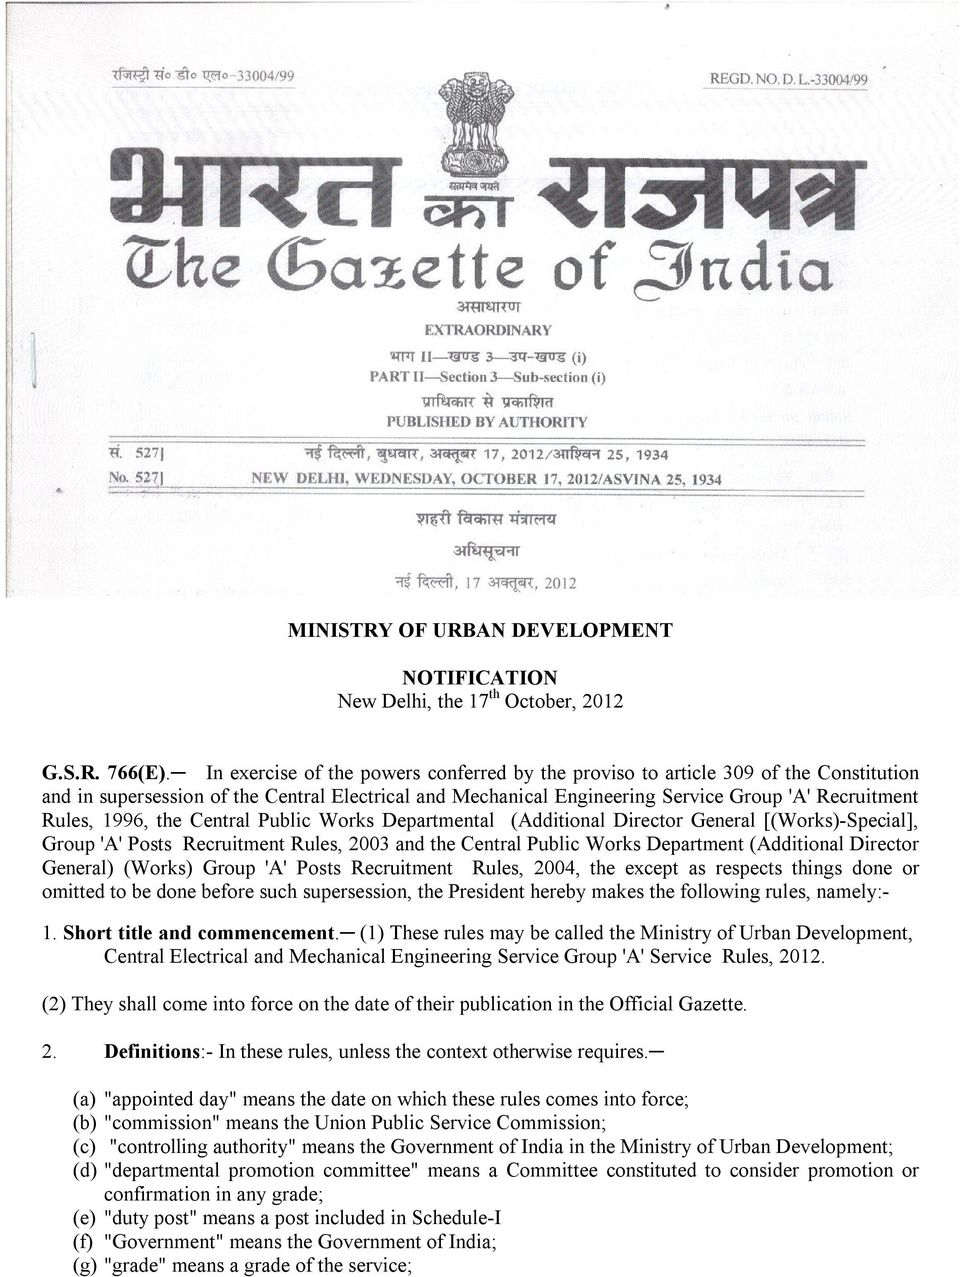 1996, the Central Public Works Departmental (Additional Director General [(Works)-Special], Group 'A' Posts Recruitment Rules, 2003 and the Central Public Works Department (Additional Director